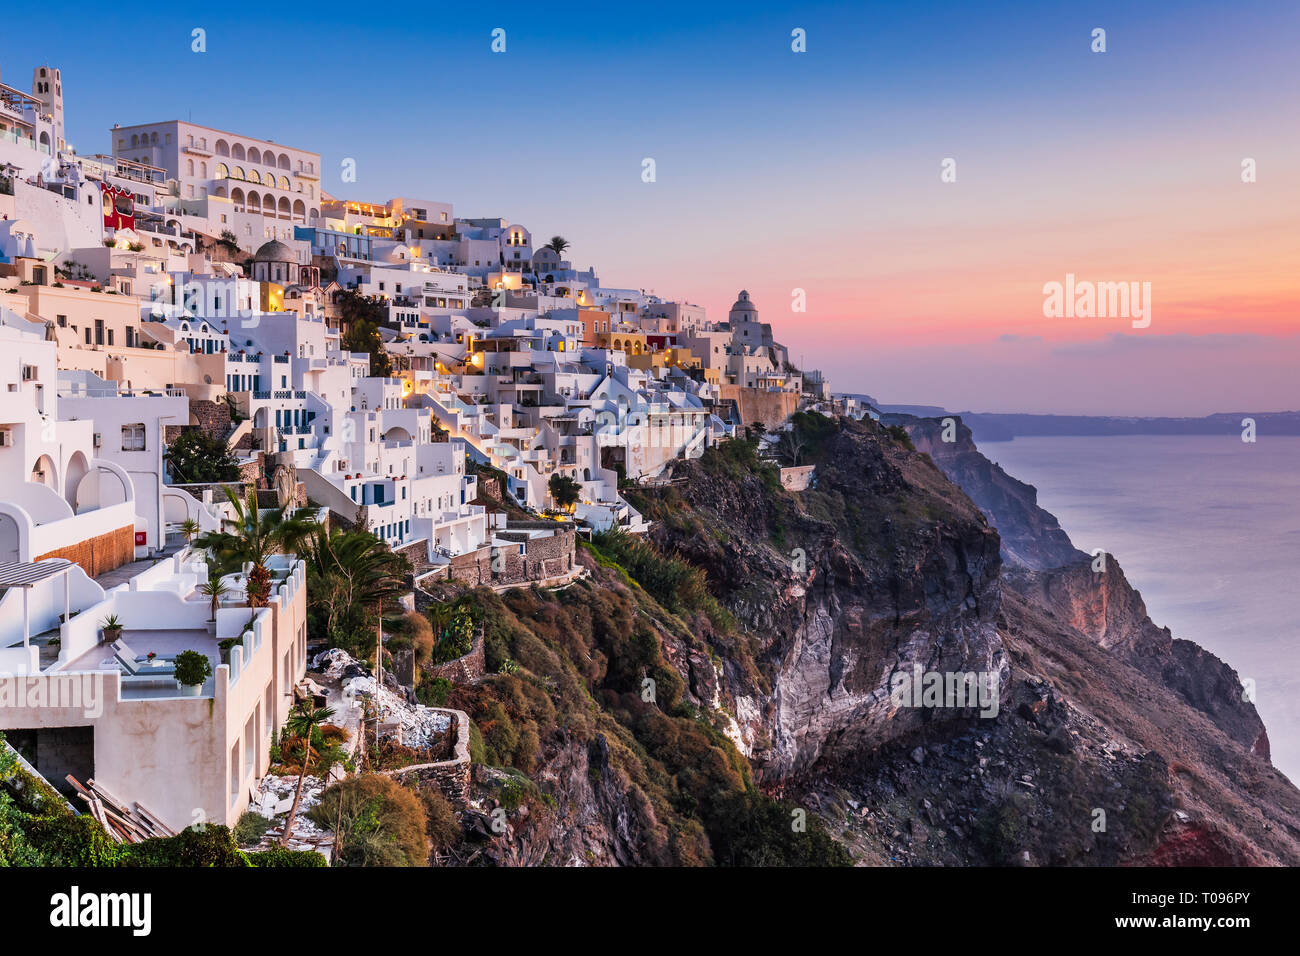 Santorini, Greece. The picturesque Fira village at sunset. - Stock Image